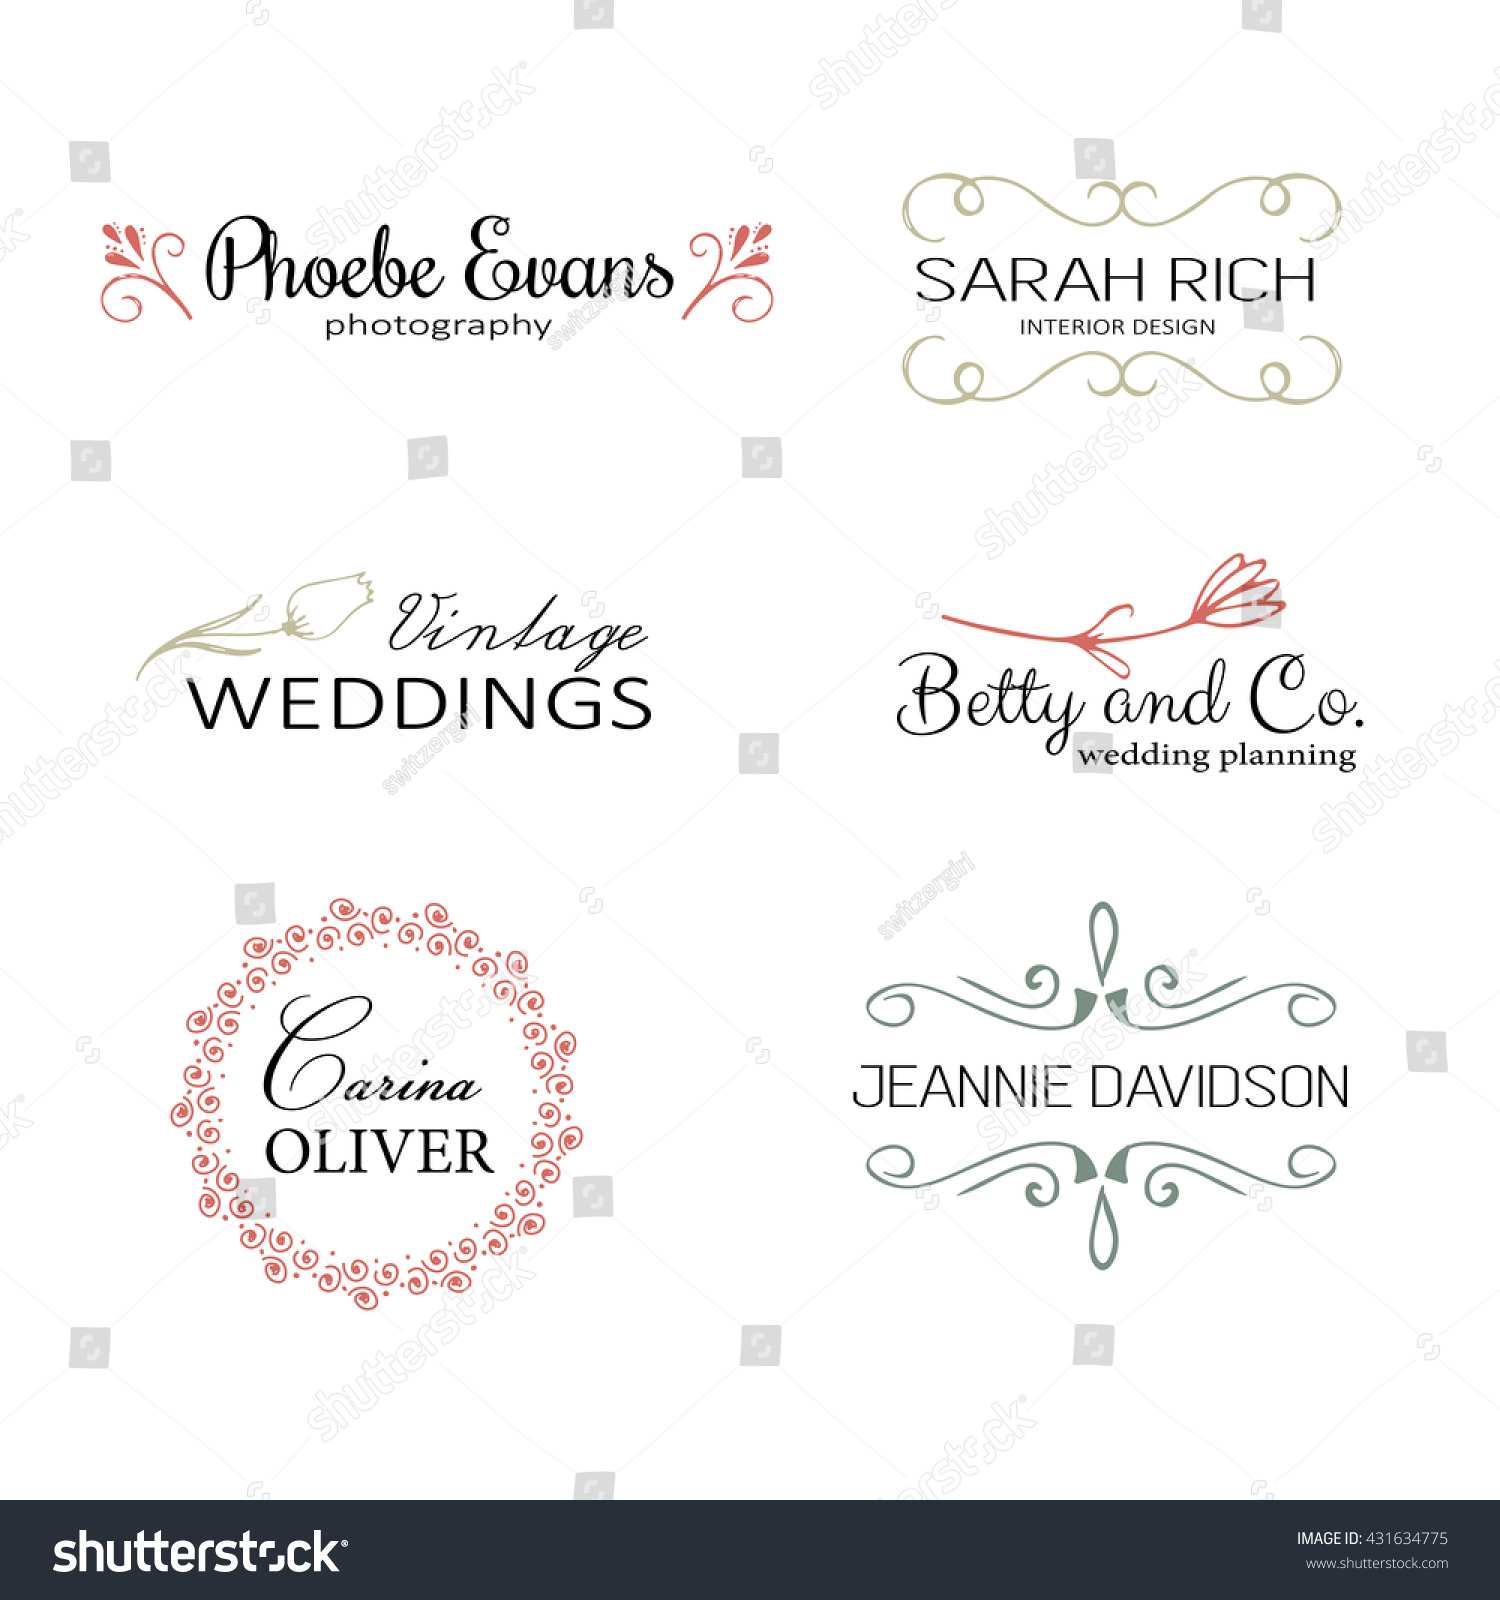 Hand drawn logo templates Floral logo rustic logo simple logo set